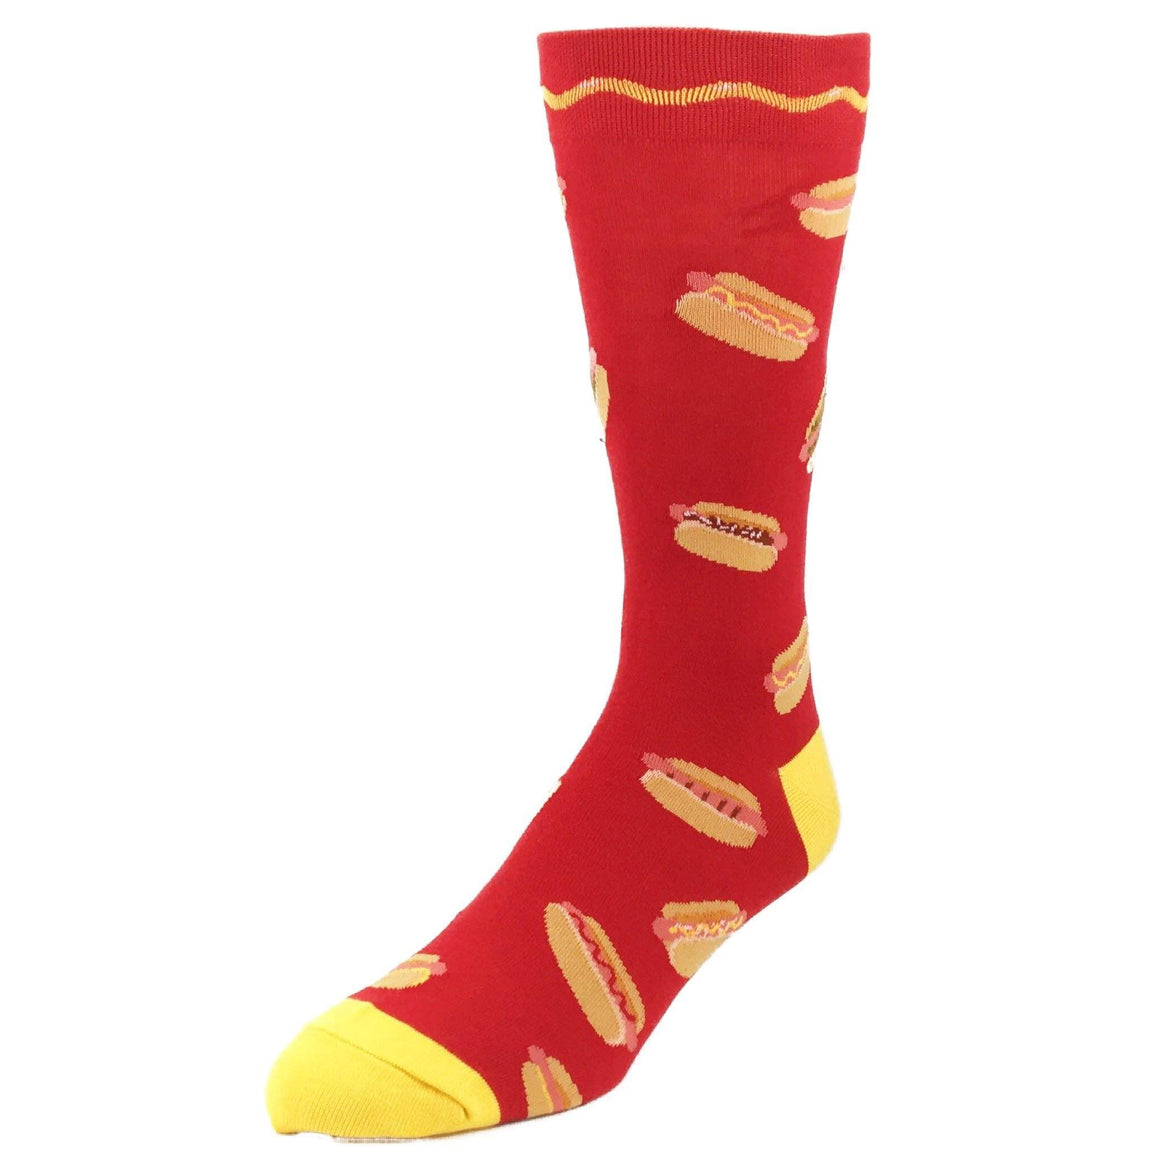 Get Your Hot Dog Food Socks by Foot Traffic - The Sock Spot